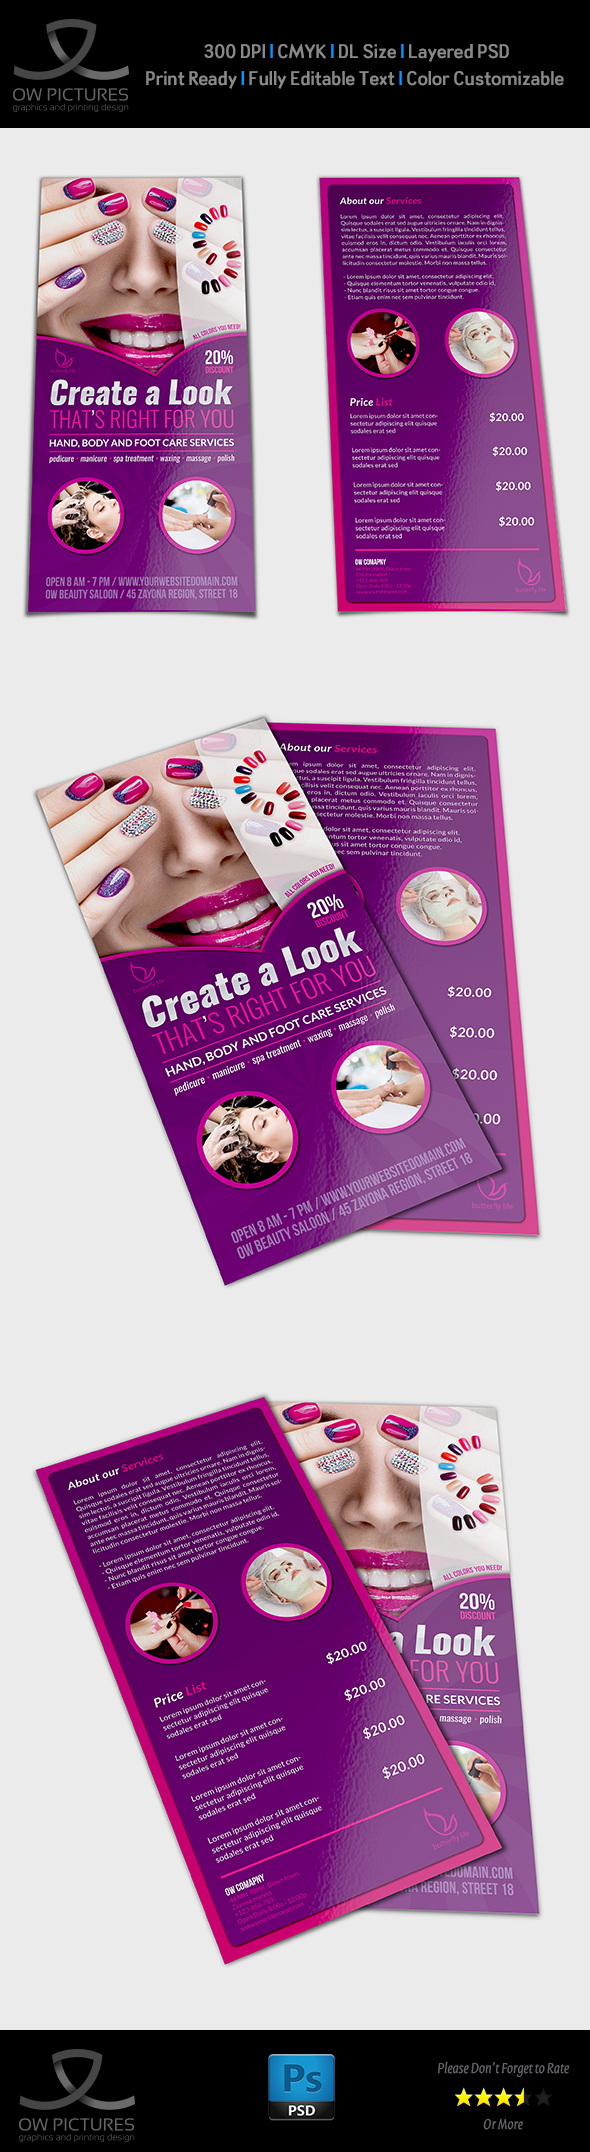 Dl Flyer Template Yelommyphonecompanyco - Dl size flyer template